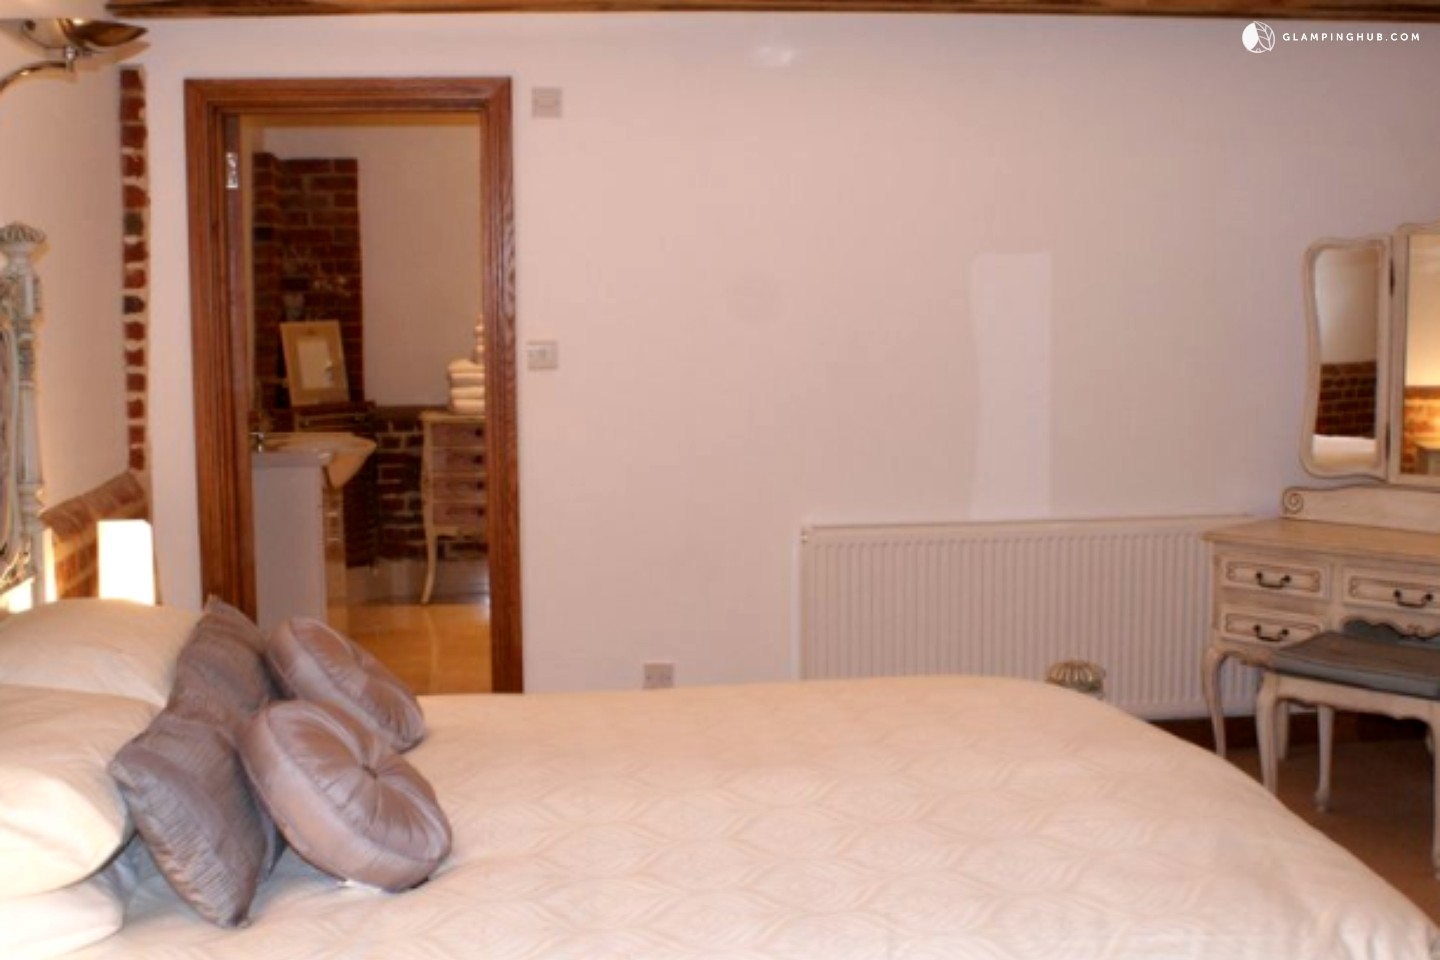 Luxury Barns For Rent In Maldom England Luxury Camping